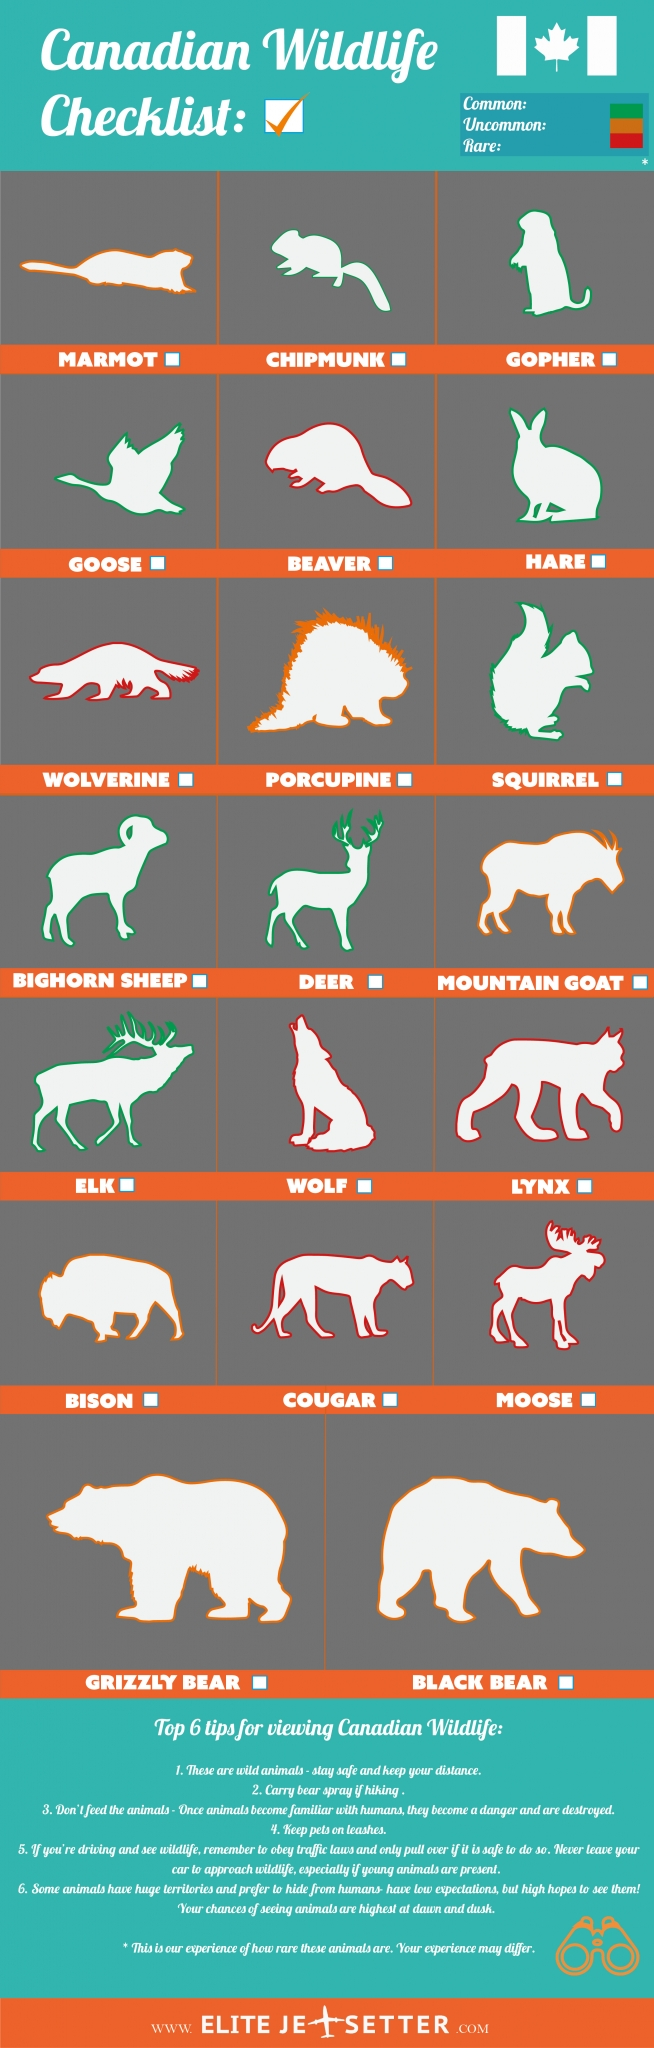 Canadian Animal checklist